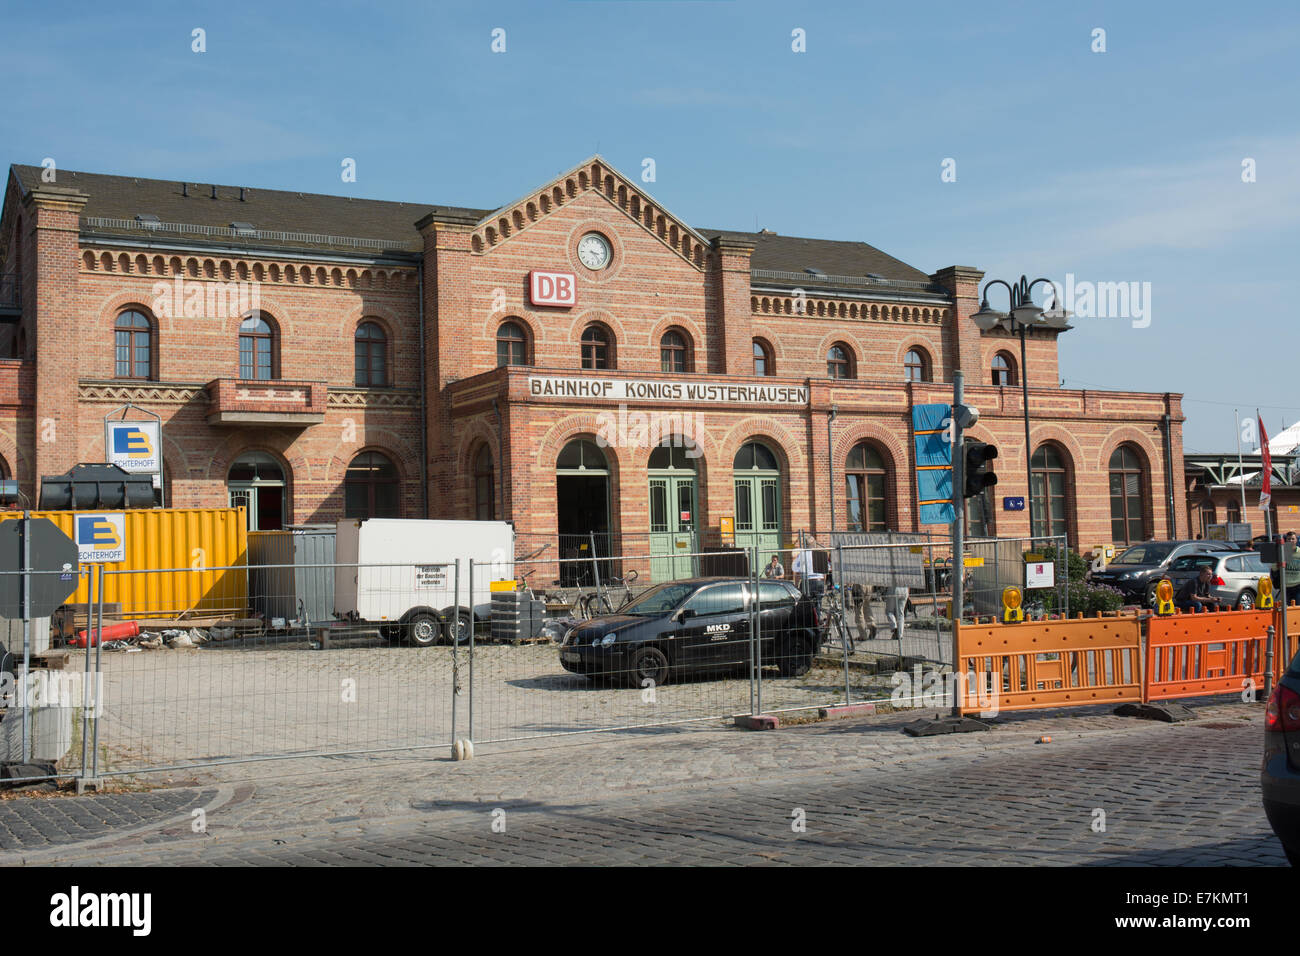 Construction work blocks access to Königs Wusterhausen Bahnhof a station in the Brandenburg state of Germany. - Stock Image